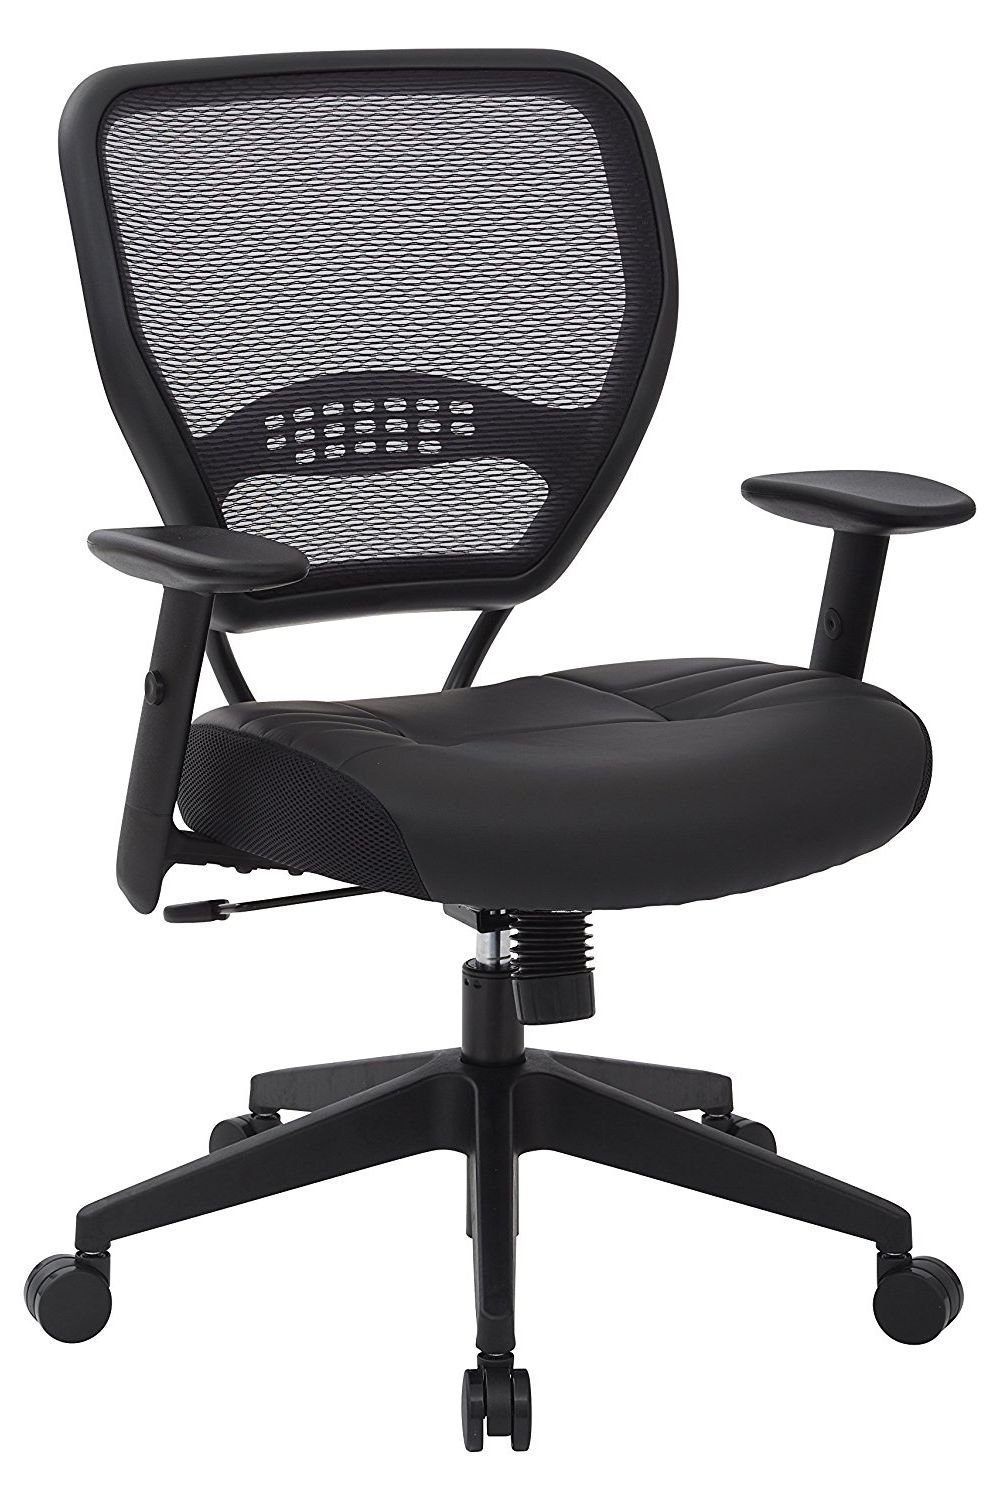 . Ergonomic office chairs can